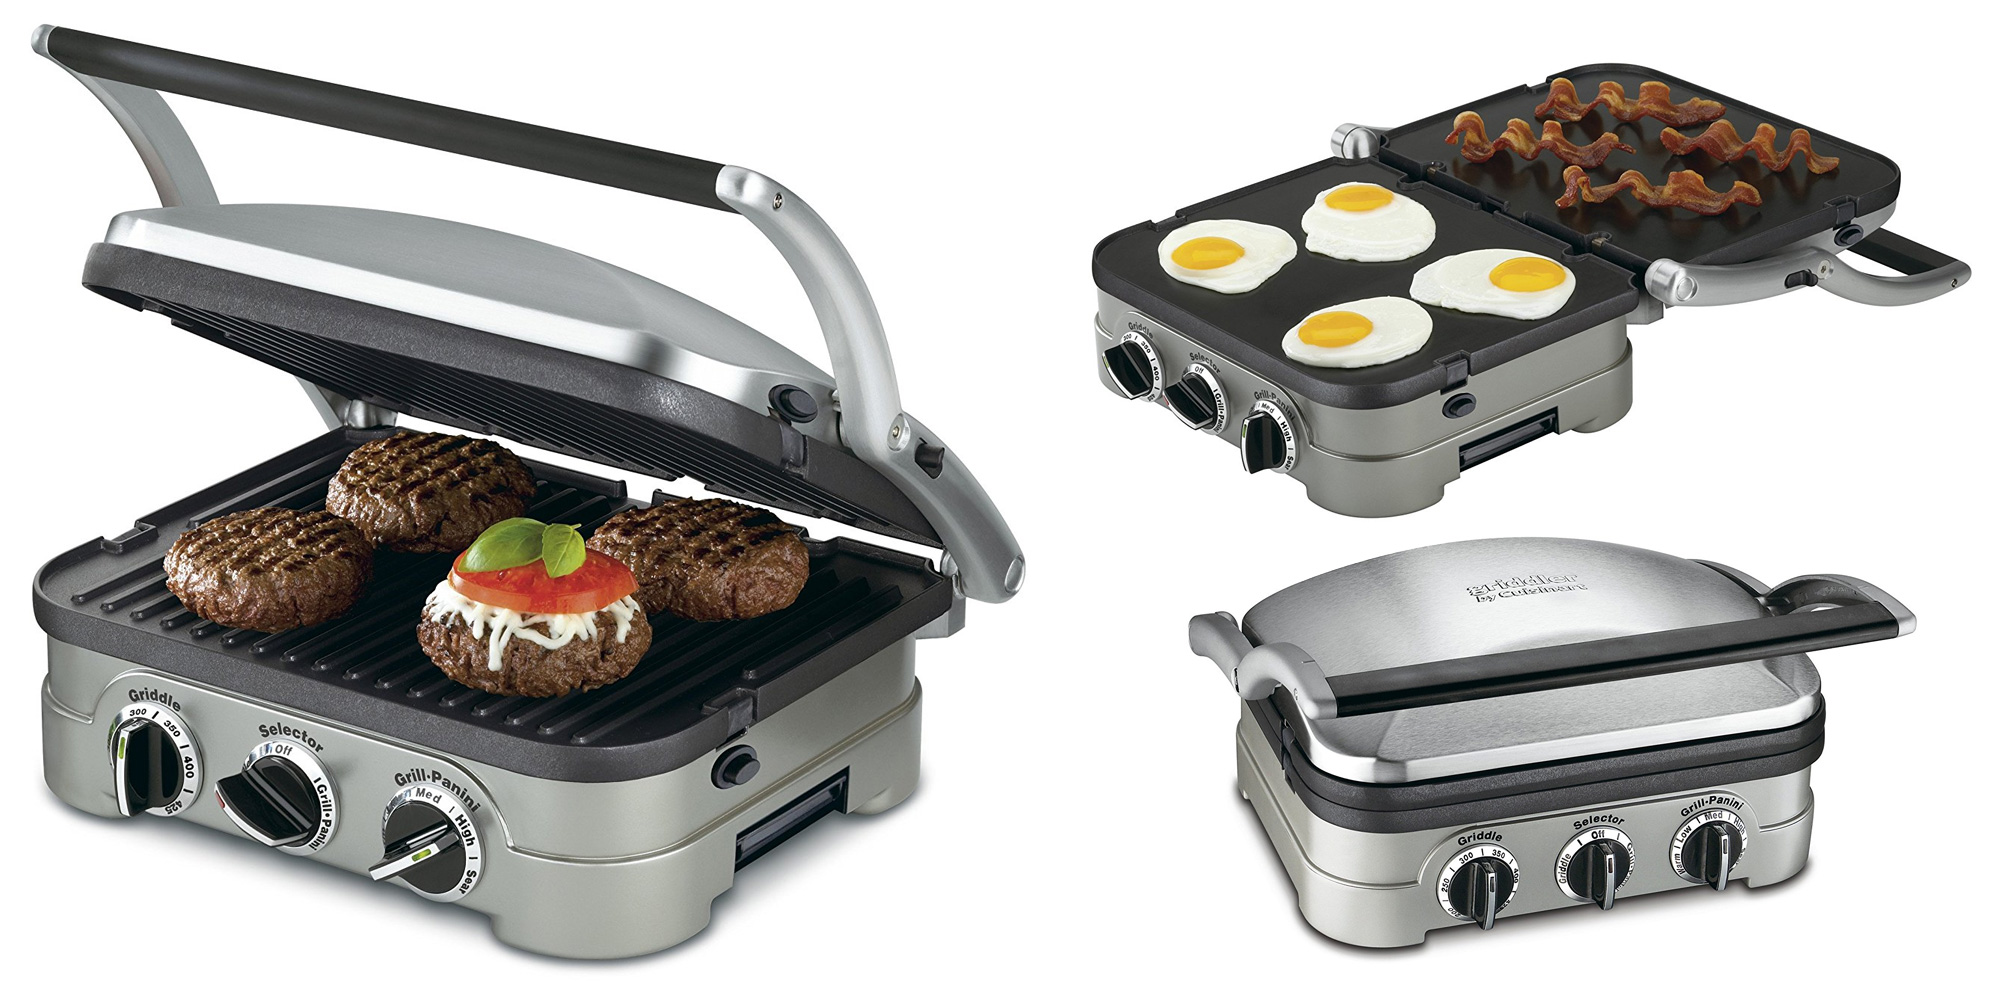 Cuisinart's Stainless Steel Griddle and Panini Press is now just $40 or less (Reg. $72+)